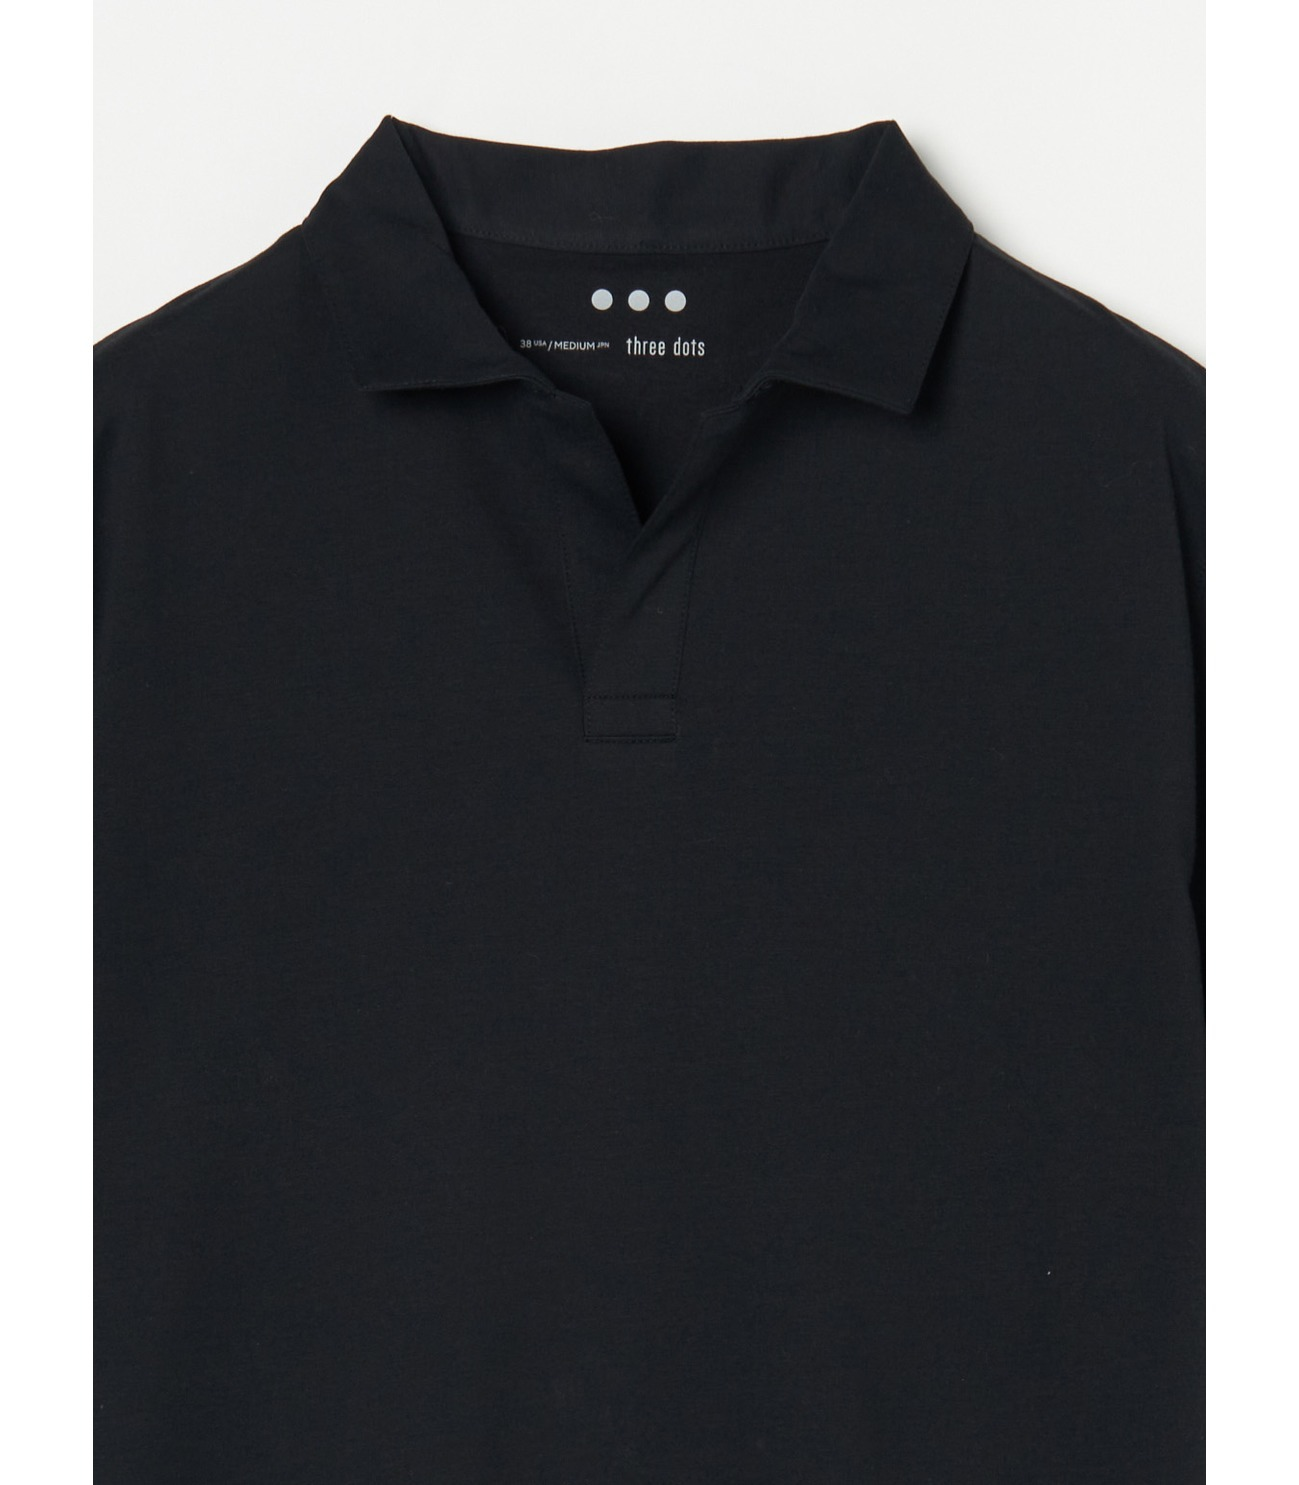 Men's powdery cotton skipper polo 詳細画像 black 2